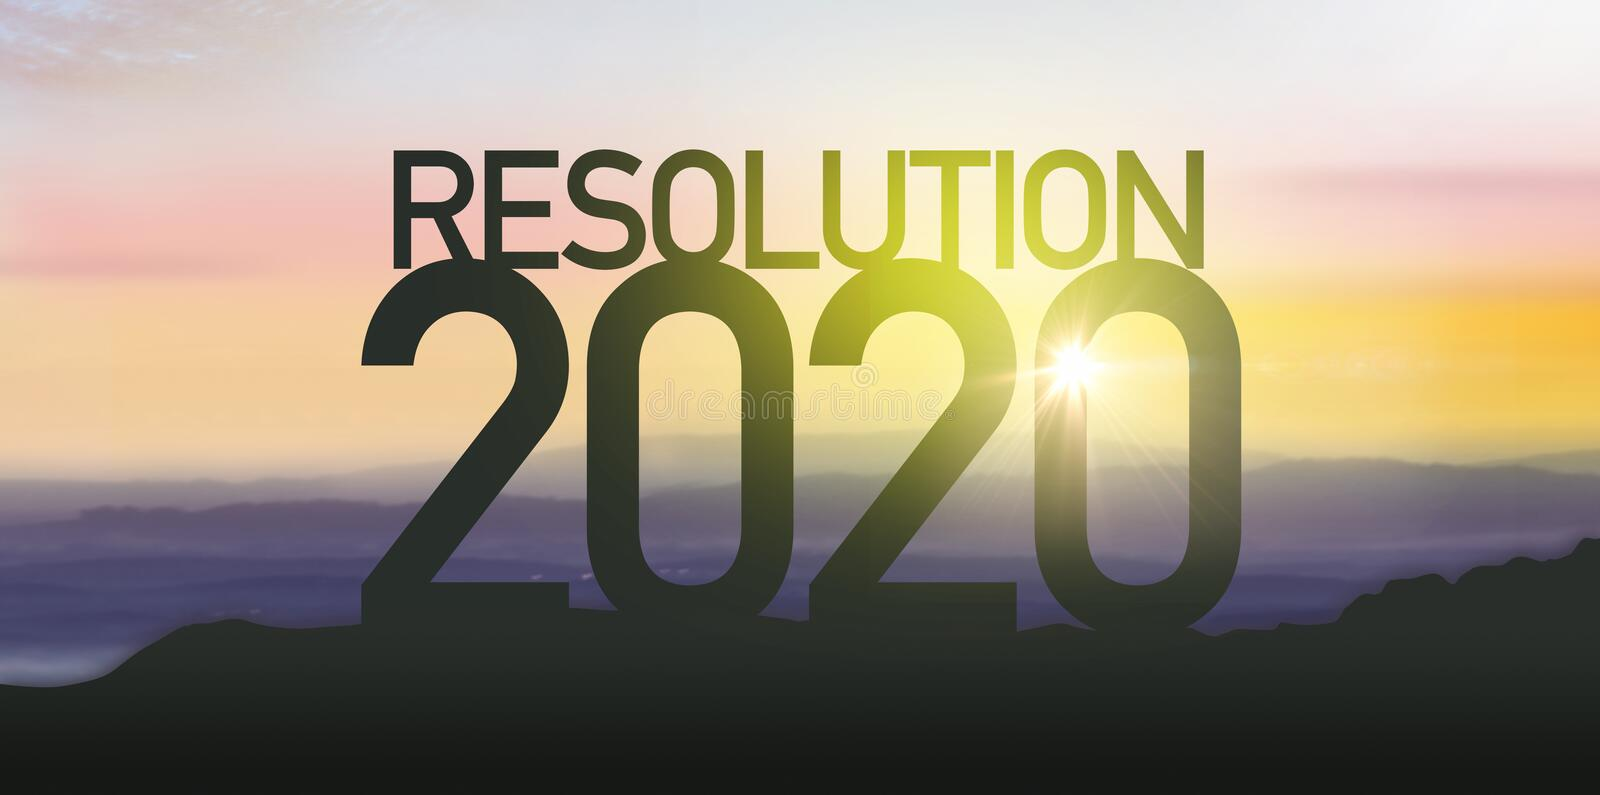 Silhouette for resolution 2020 stock image